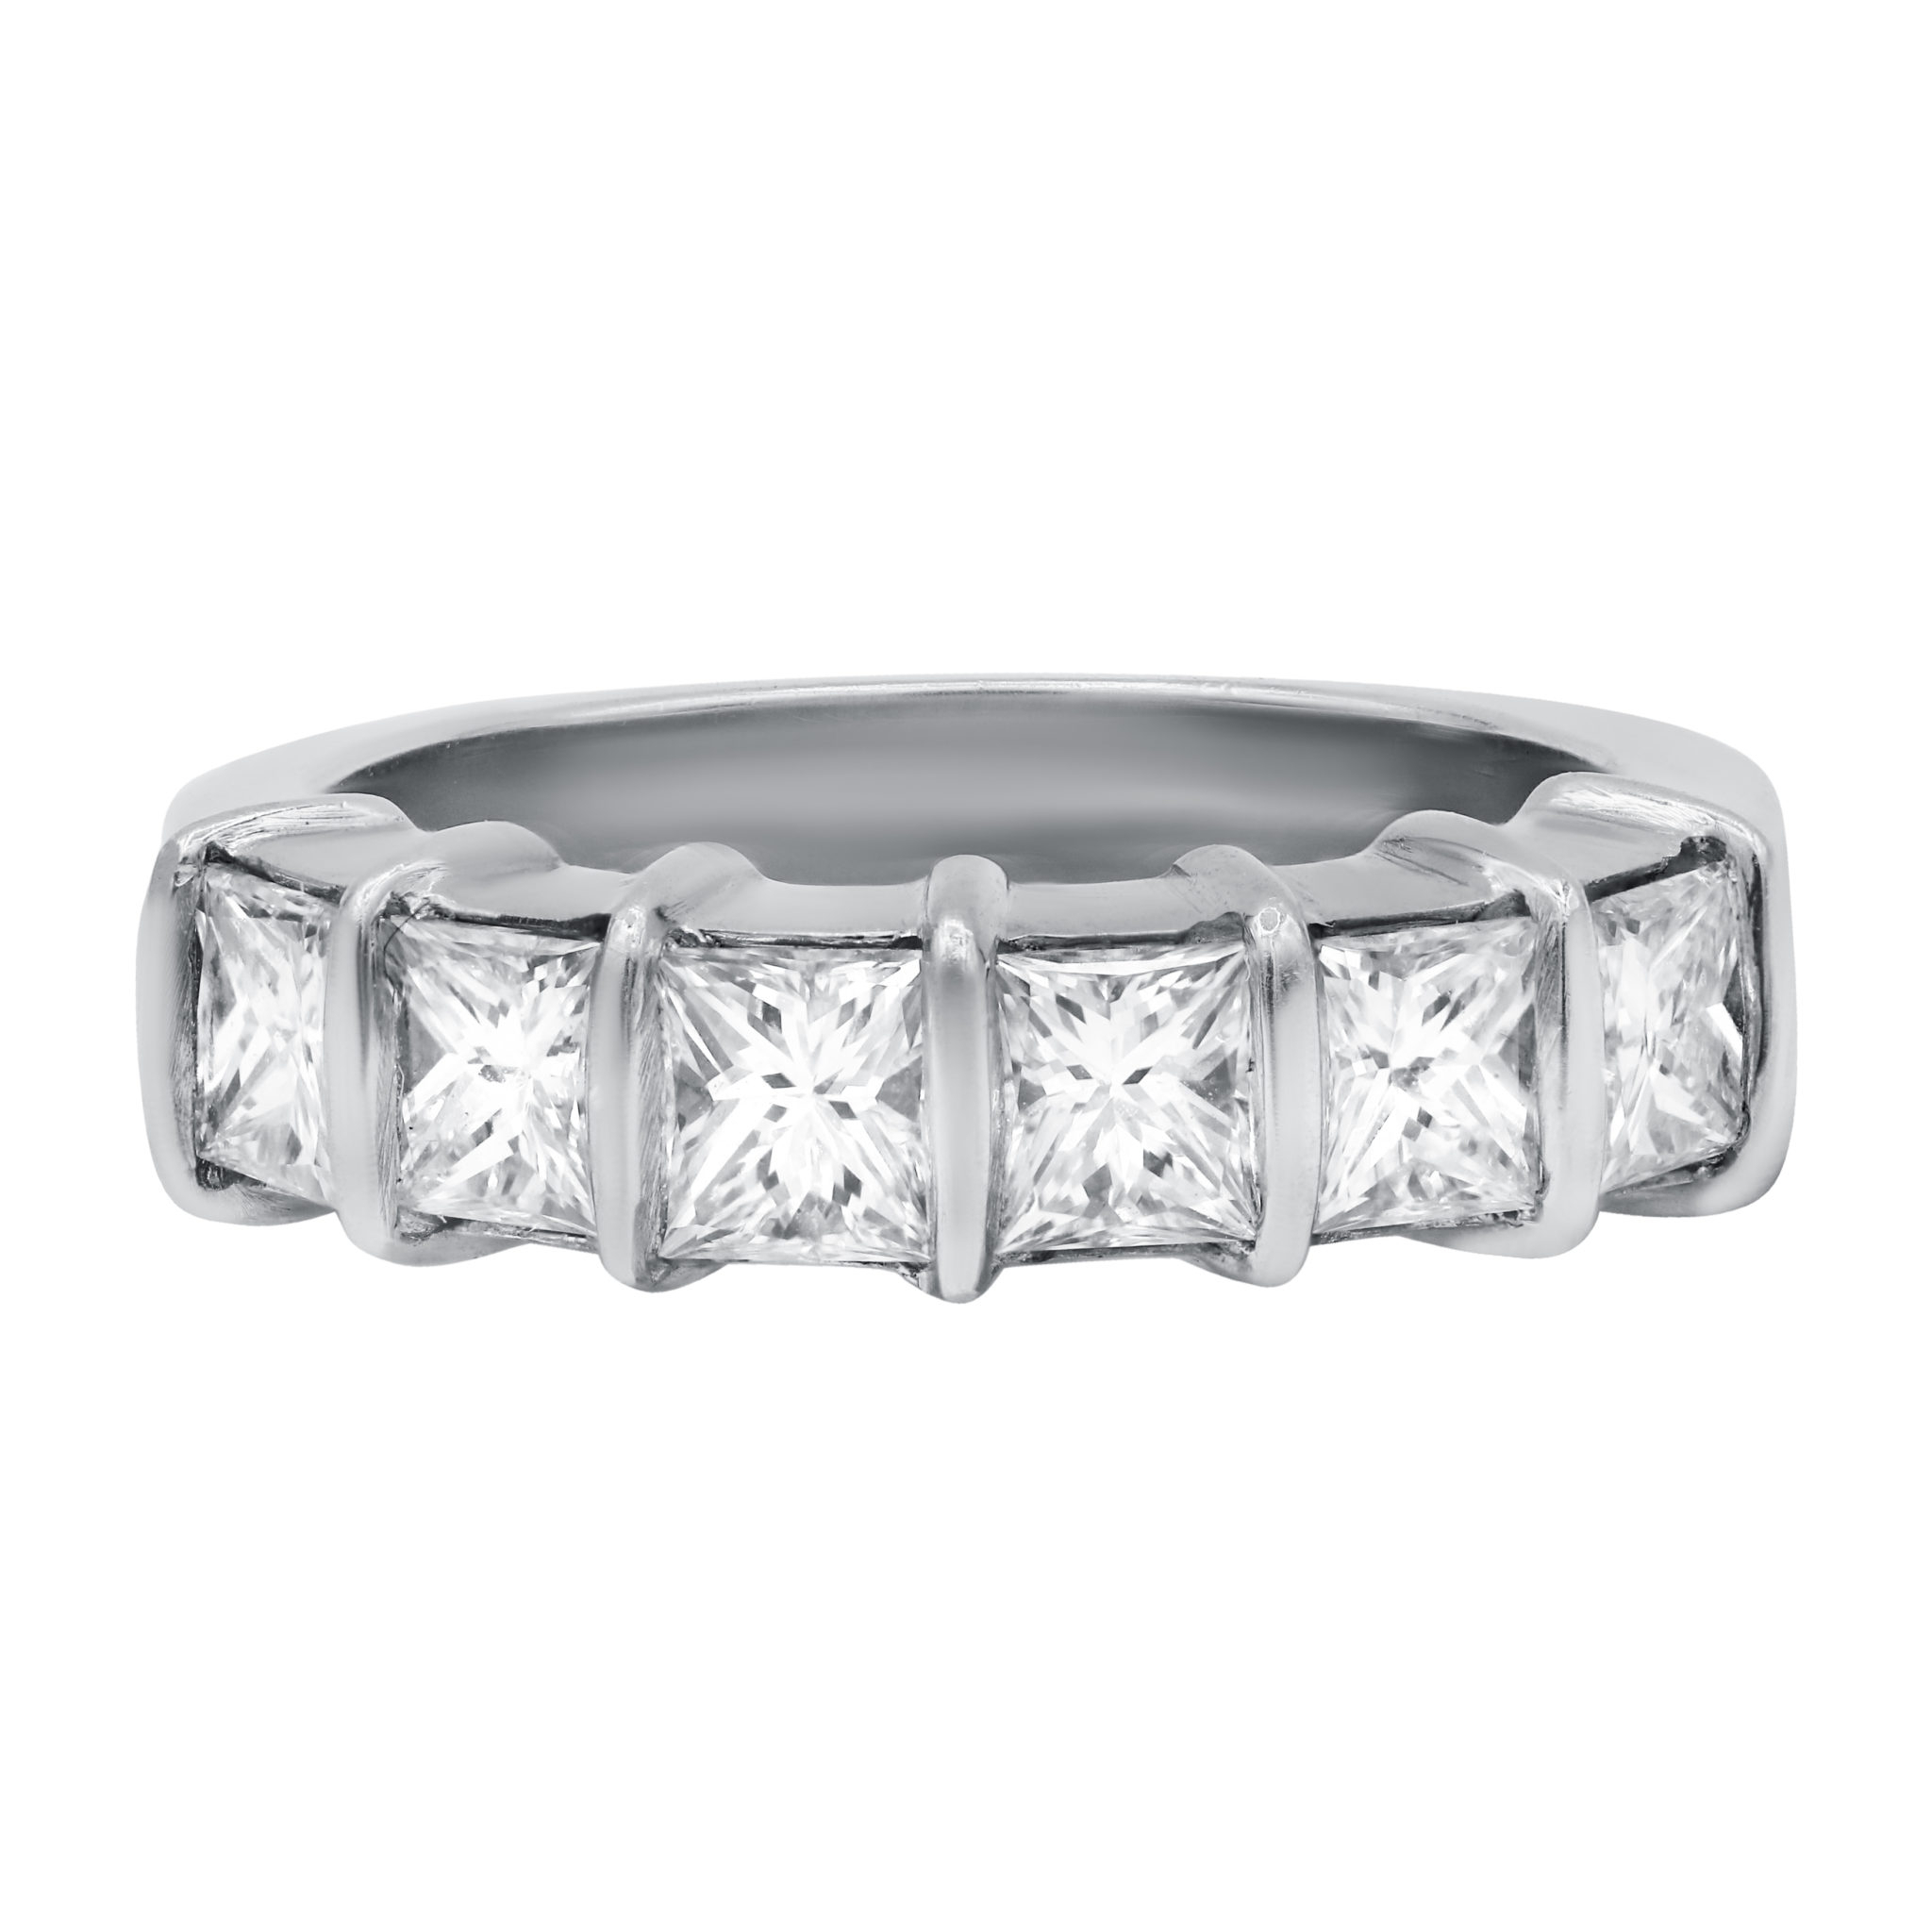 Princess Cut Half Way Around Band With Most Popular Princess Cut And Round Diamond Three Row Anniversary Bands In White Gold (Gallery 10 of 25)